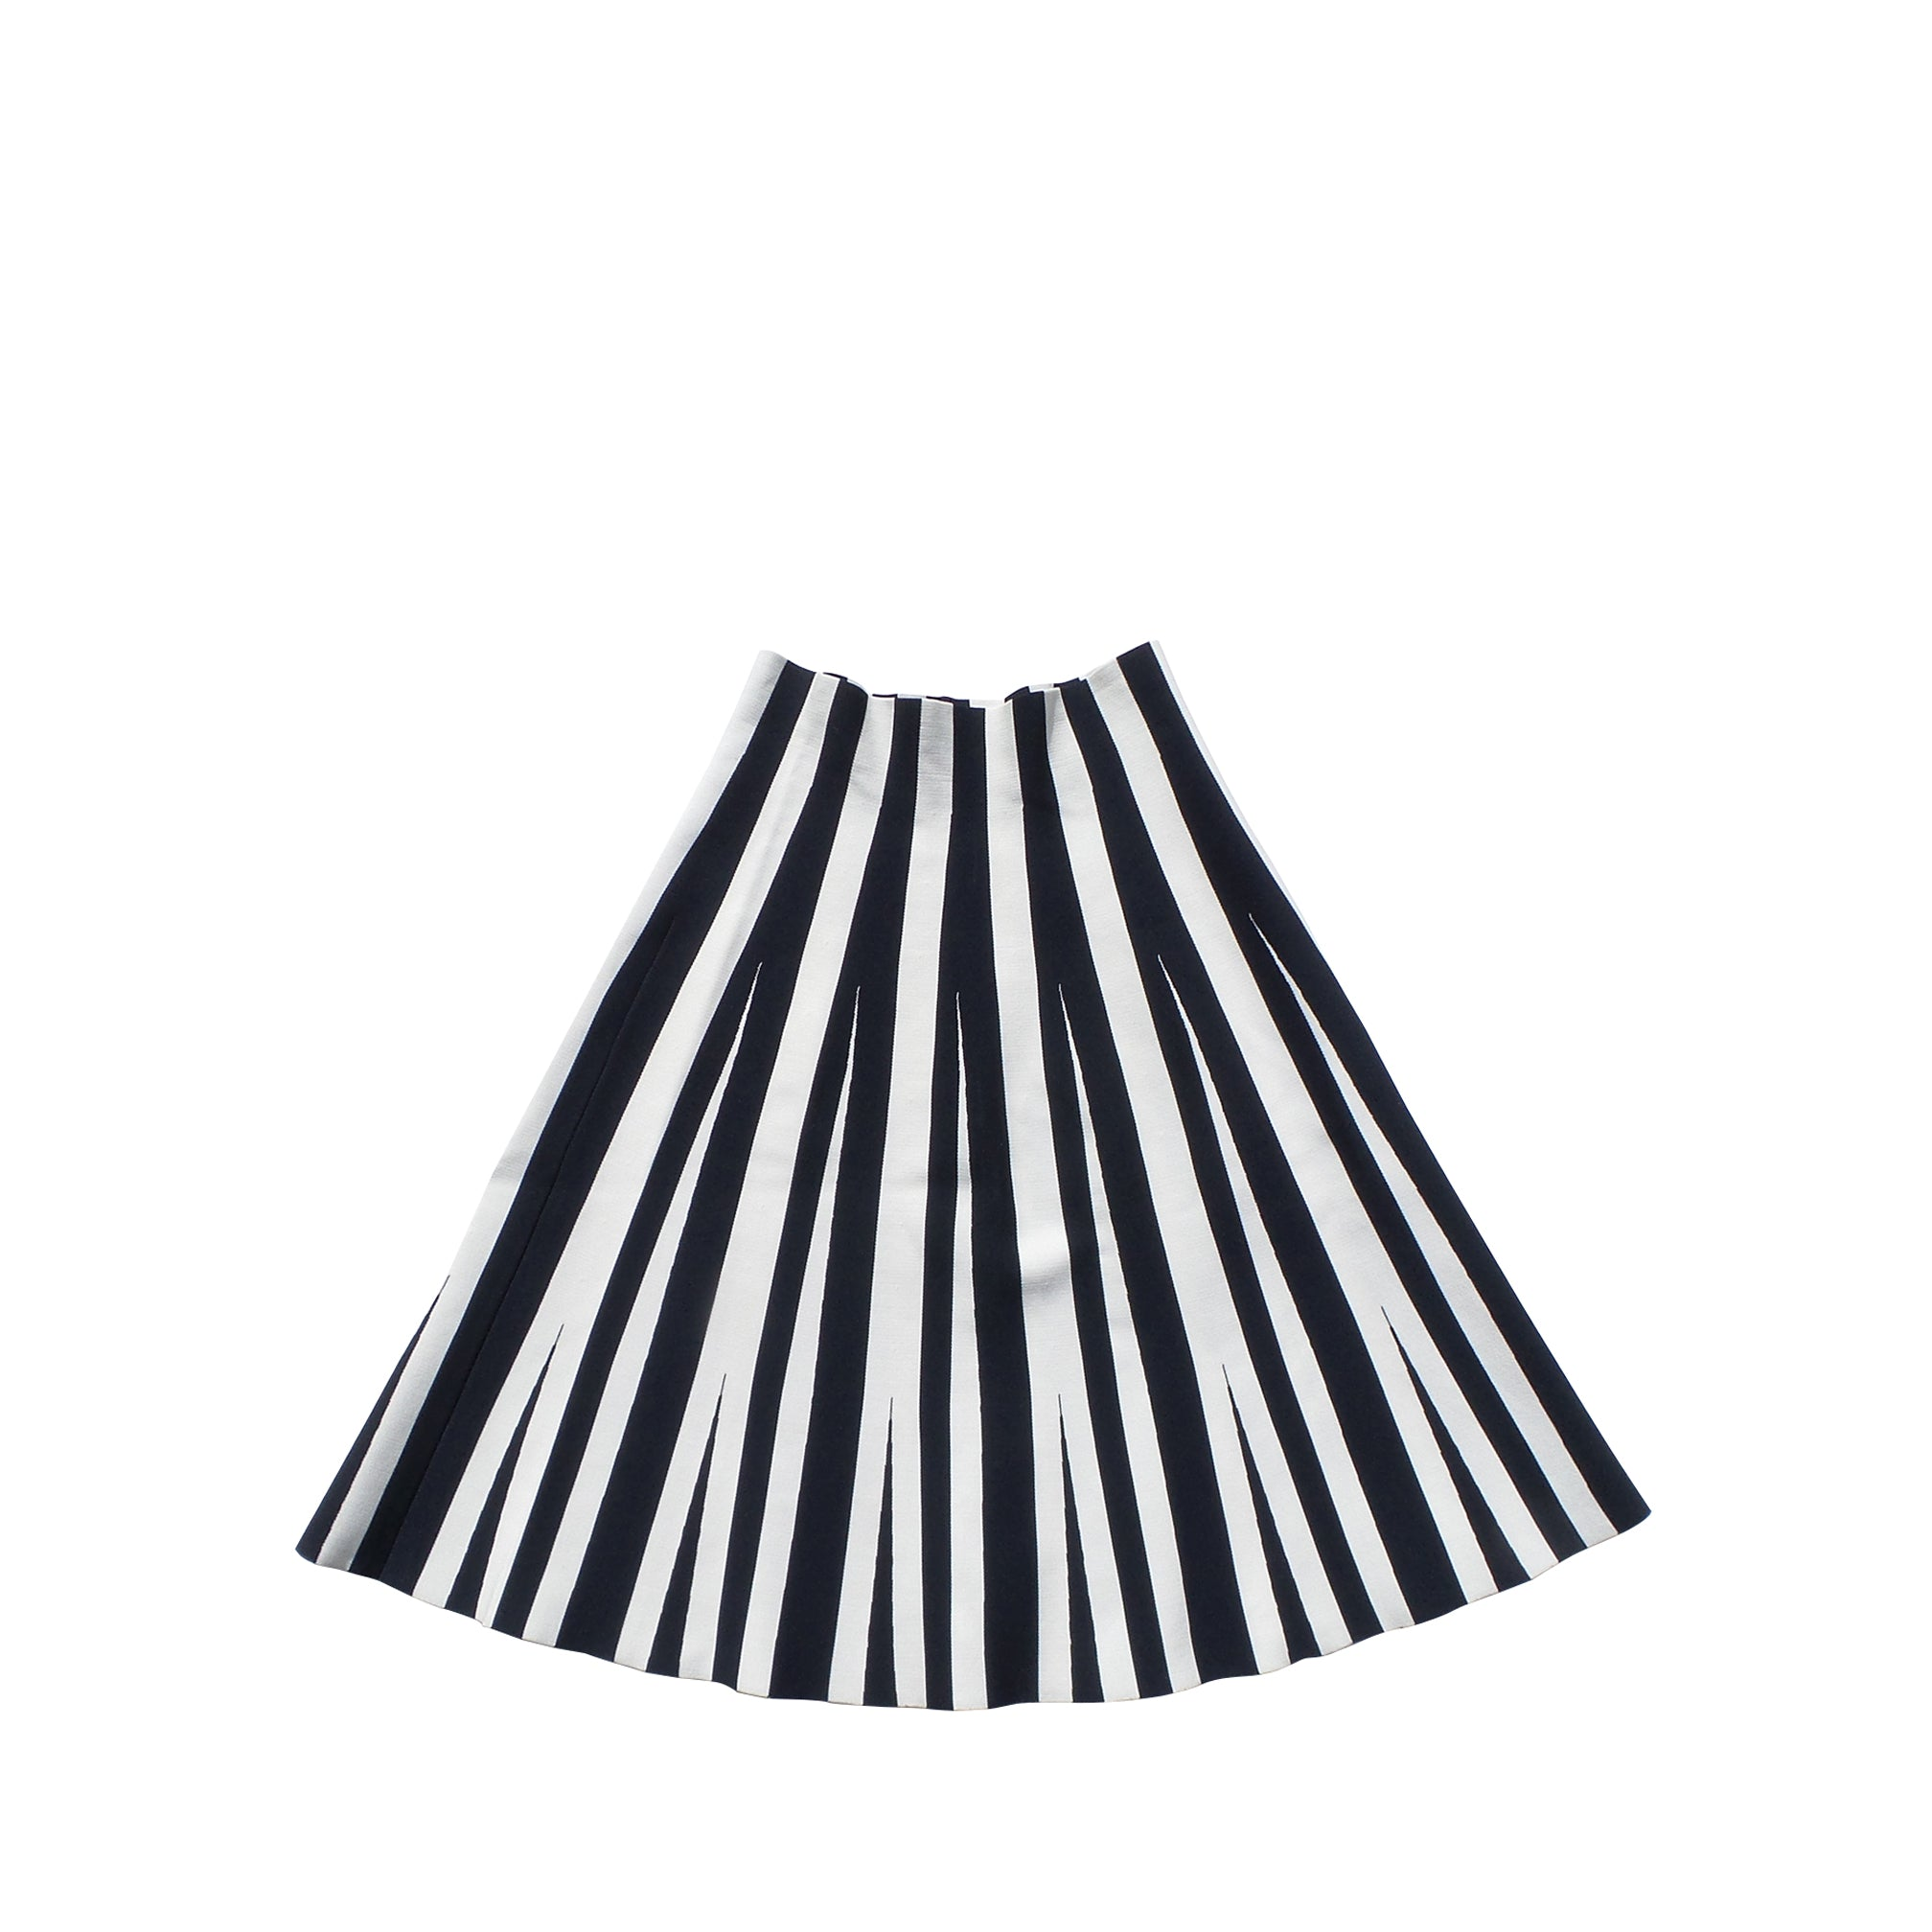 deb303a91a2082 What To Wear With A Black And White Striped Midi Skirt